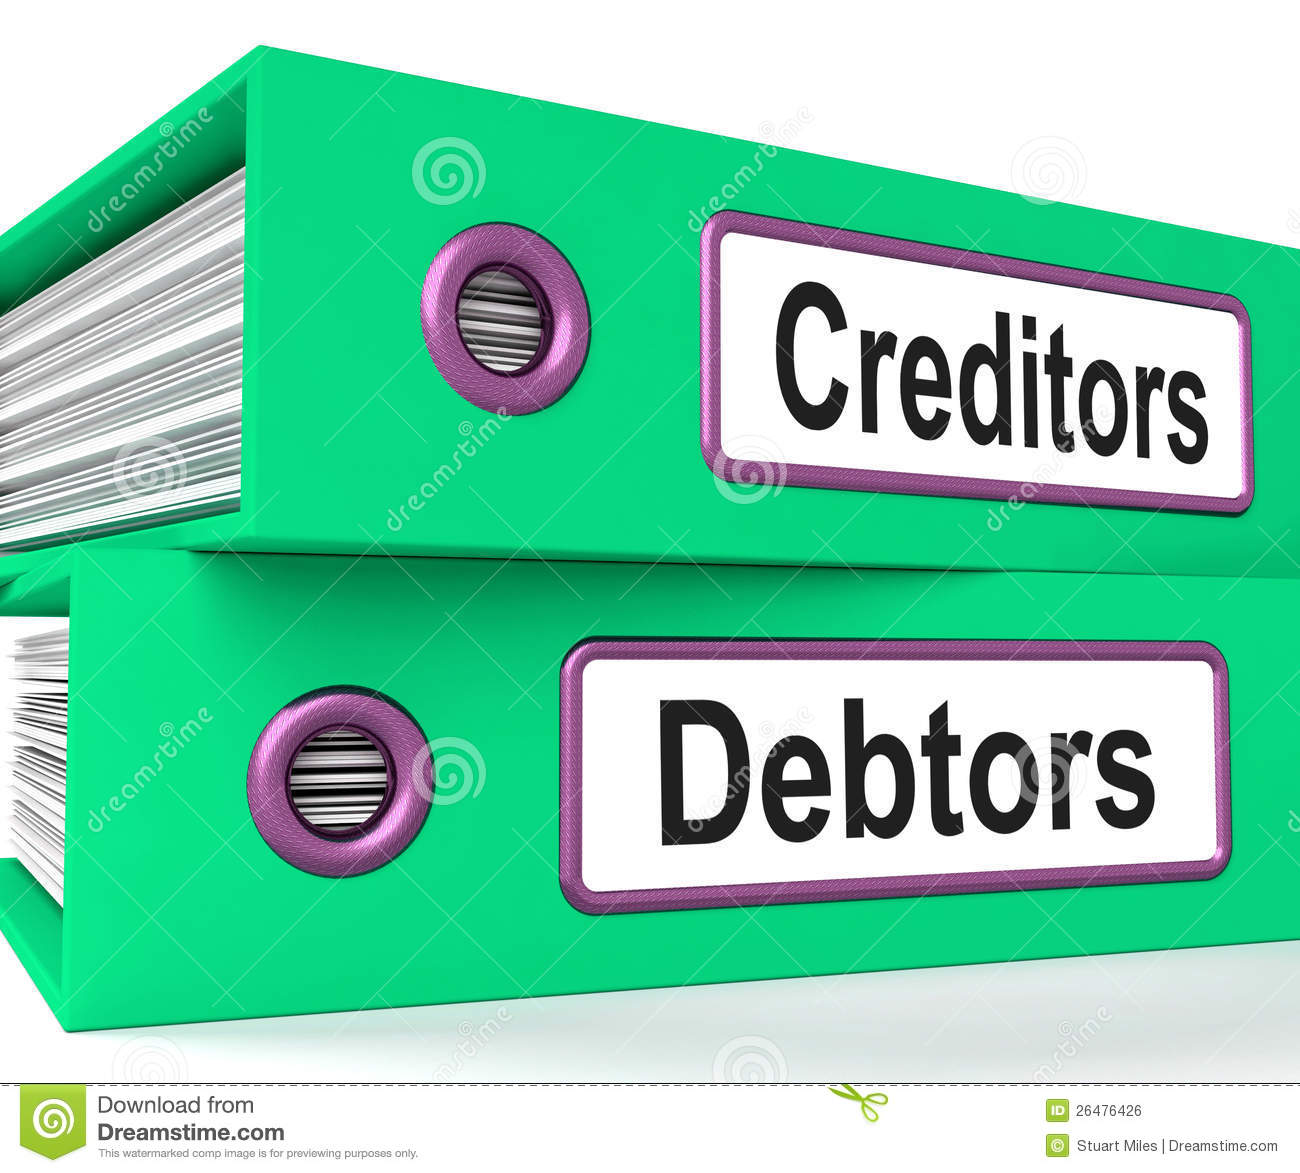 Creditors Debtors Files Shows Lending Royalty Free Stock ...